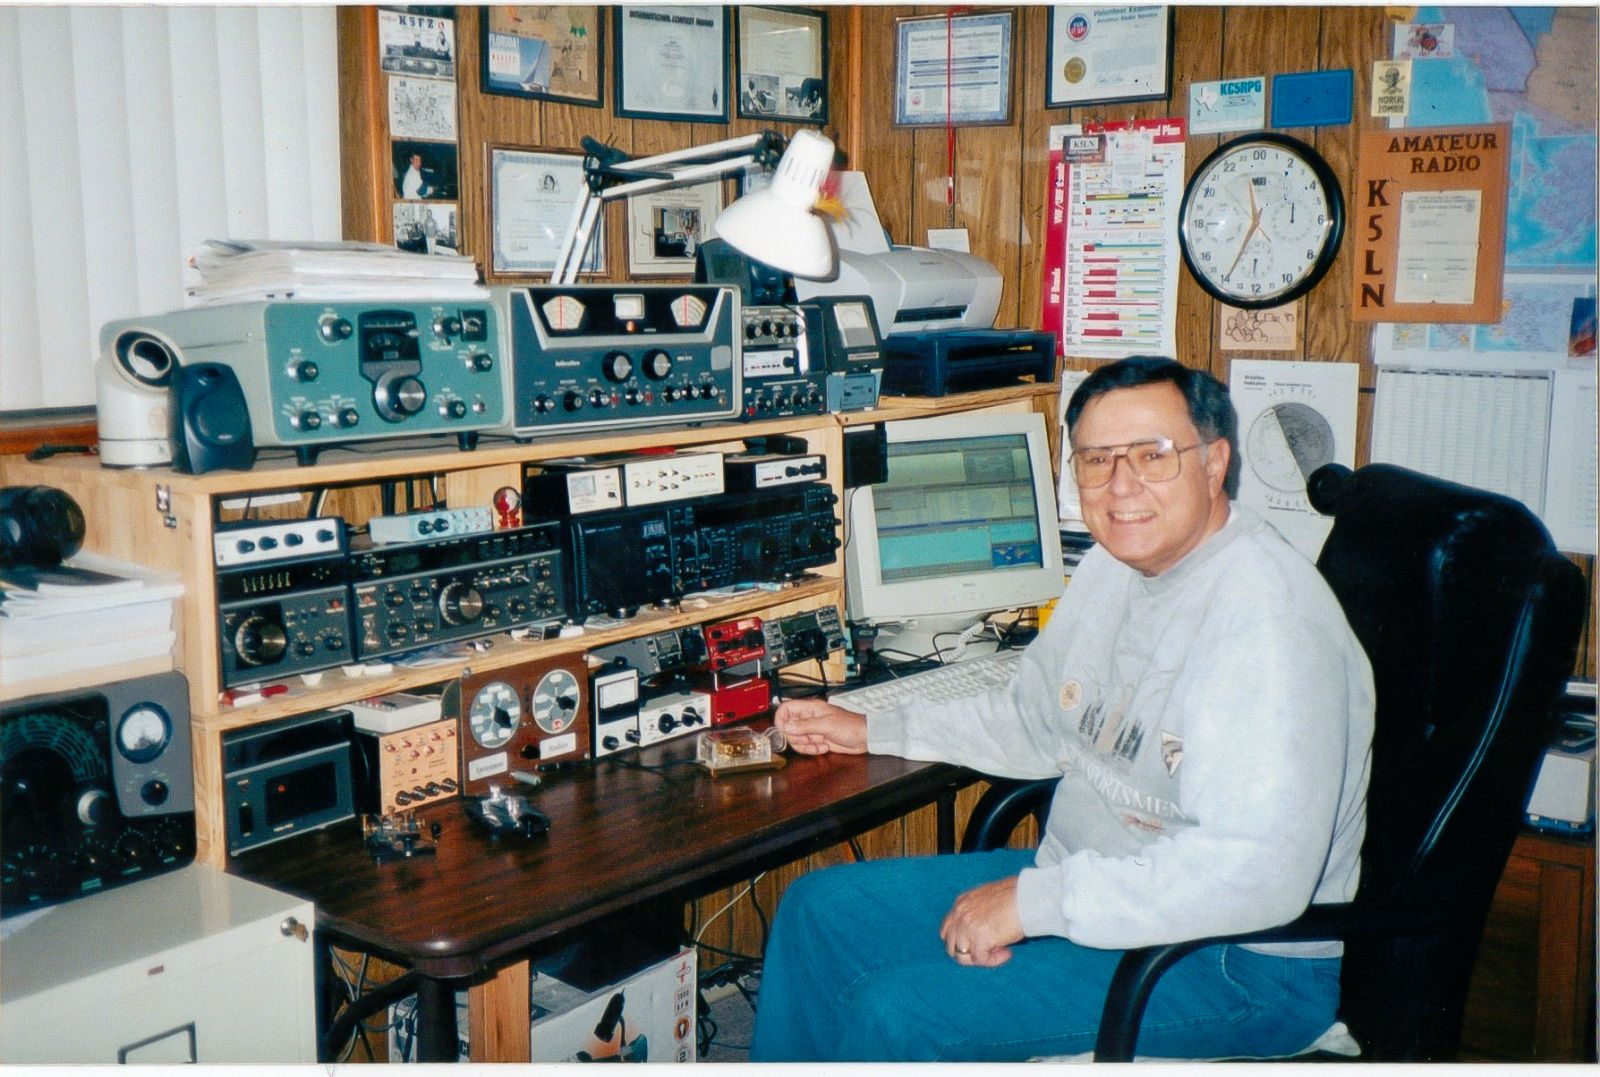 K5ln Callsign Lookup By Qrz Ham Radio Re Replacing The 3 Wire Power Cord From Old Heathkit Weather Station Lots Of Am Fm Broadcast Receivers People Who Found Out That I Repaired These Classics